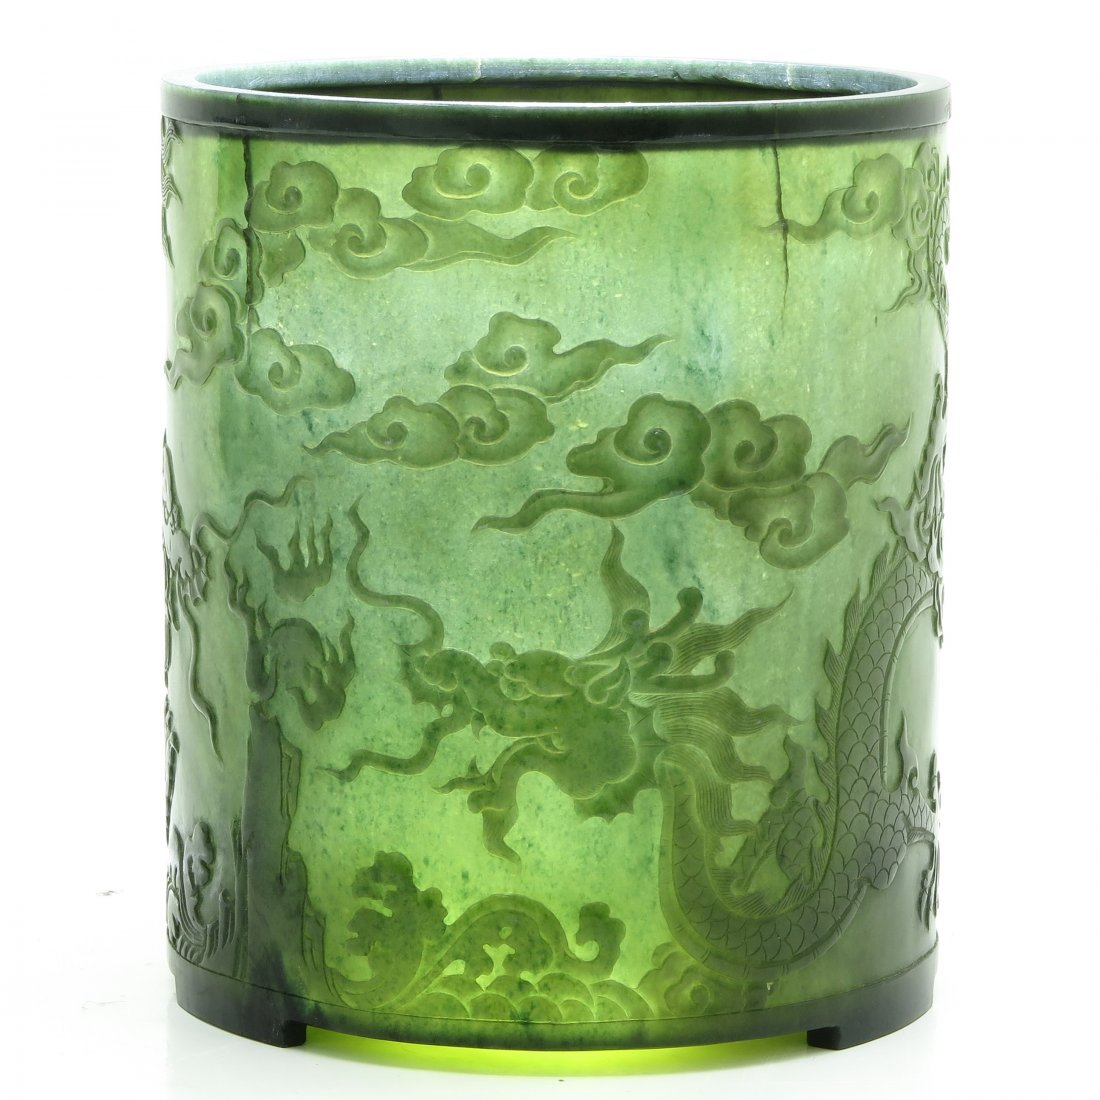 A Beautifully Detailed Carved Jade Brush Pot